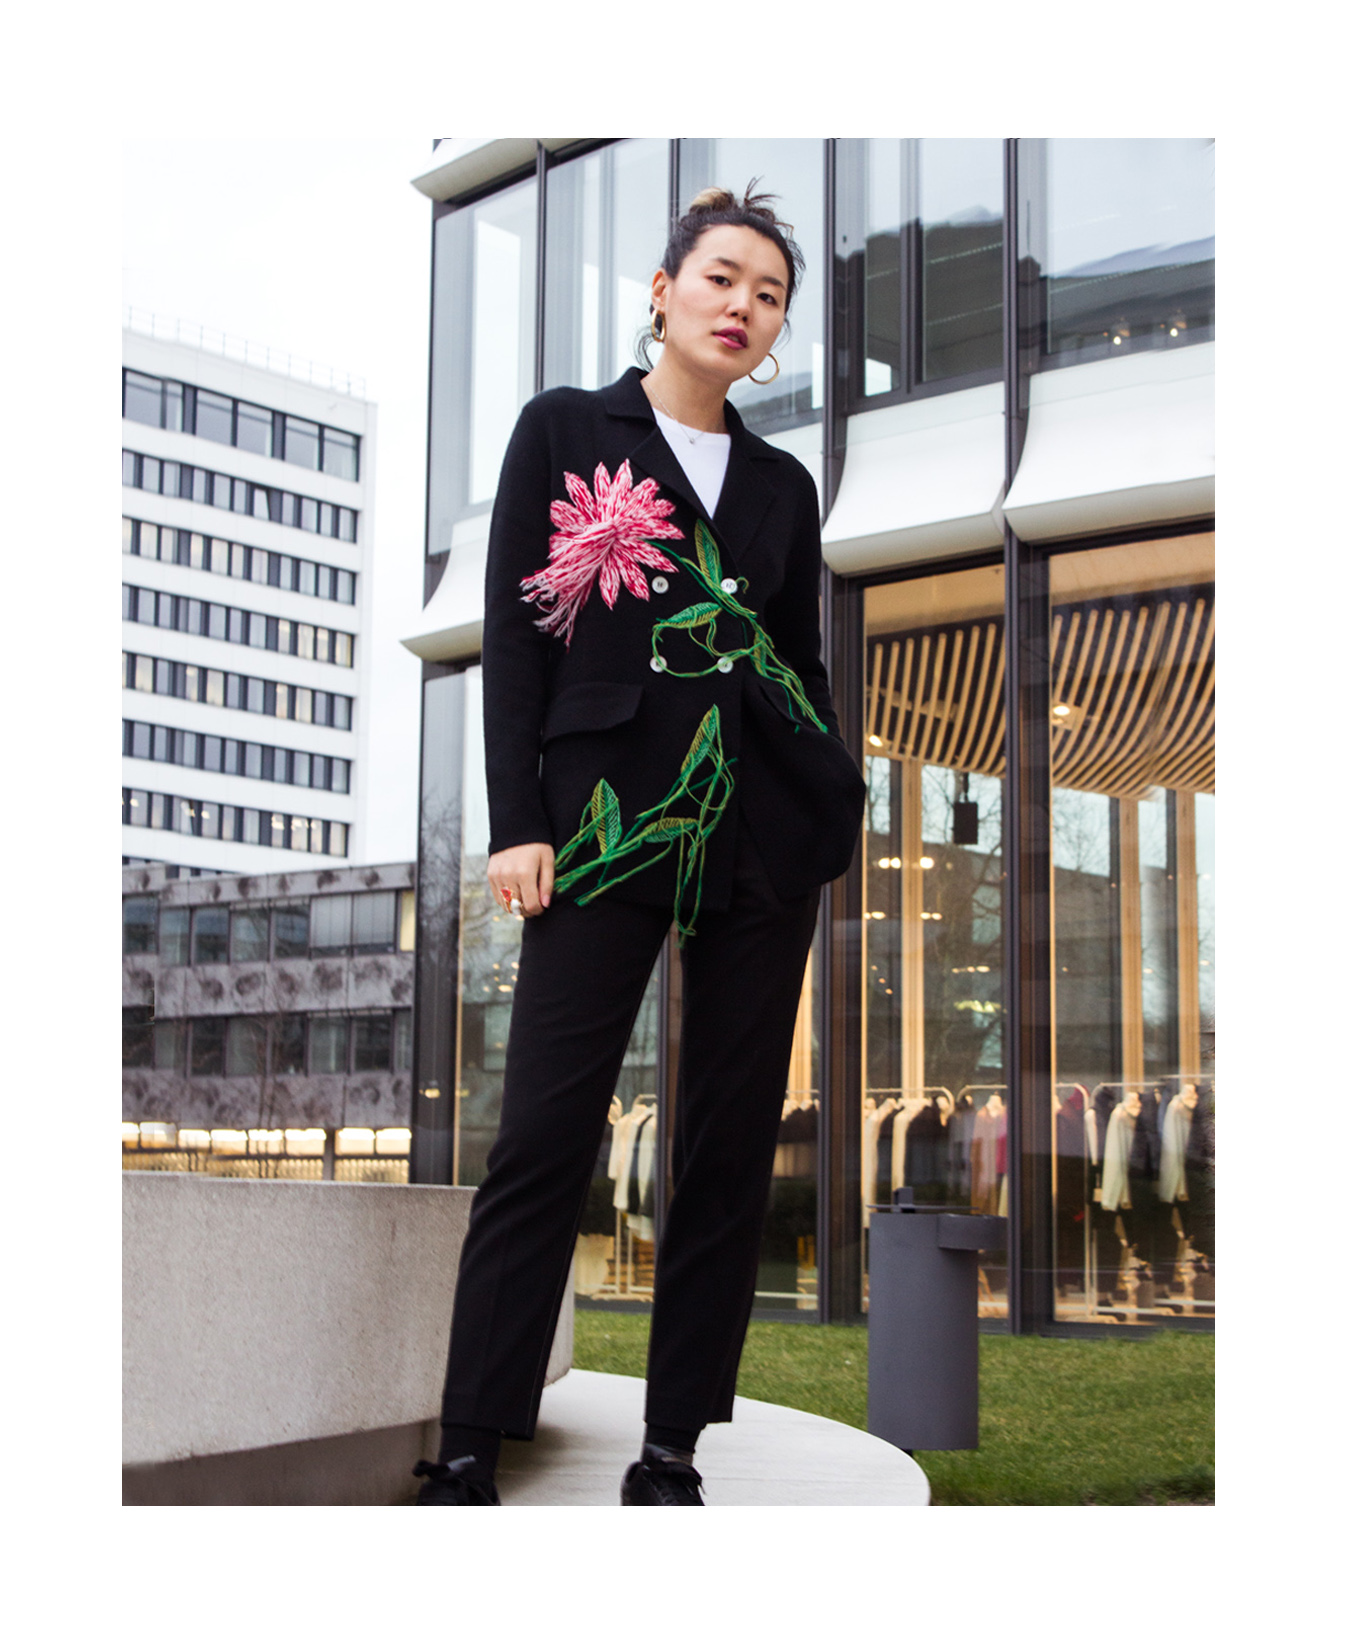 Mandkhai wearing suit blazer in black with embroidered flower